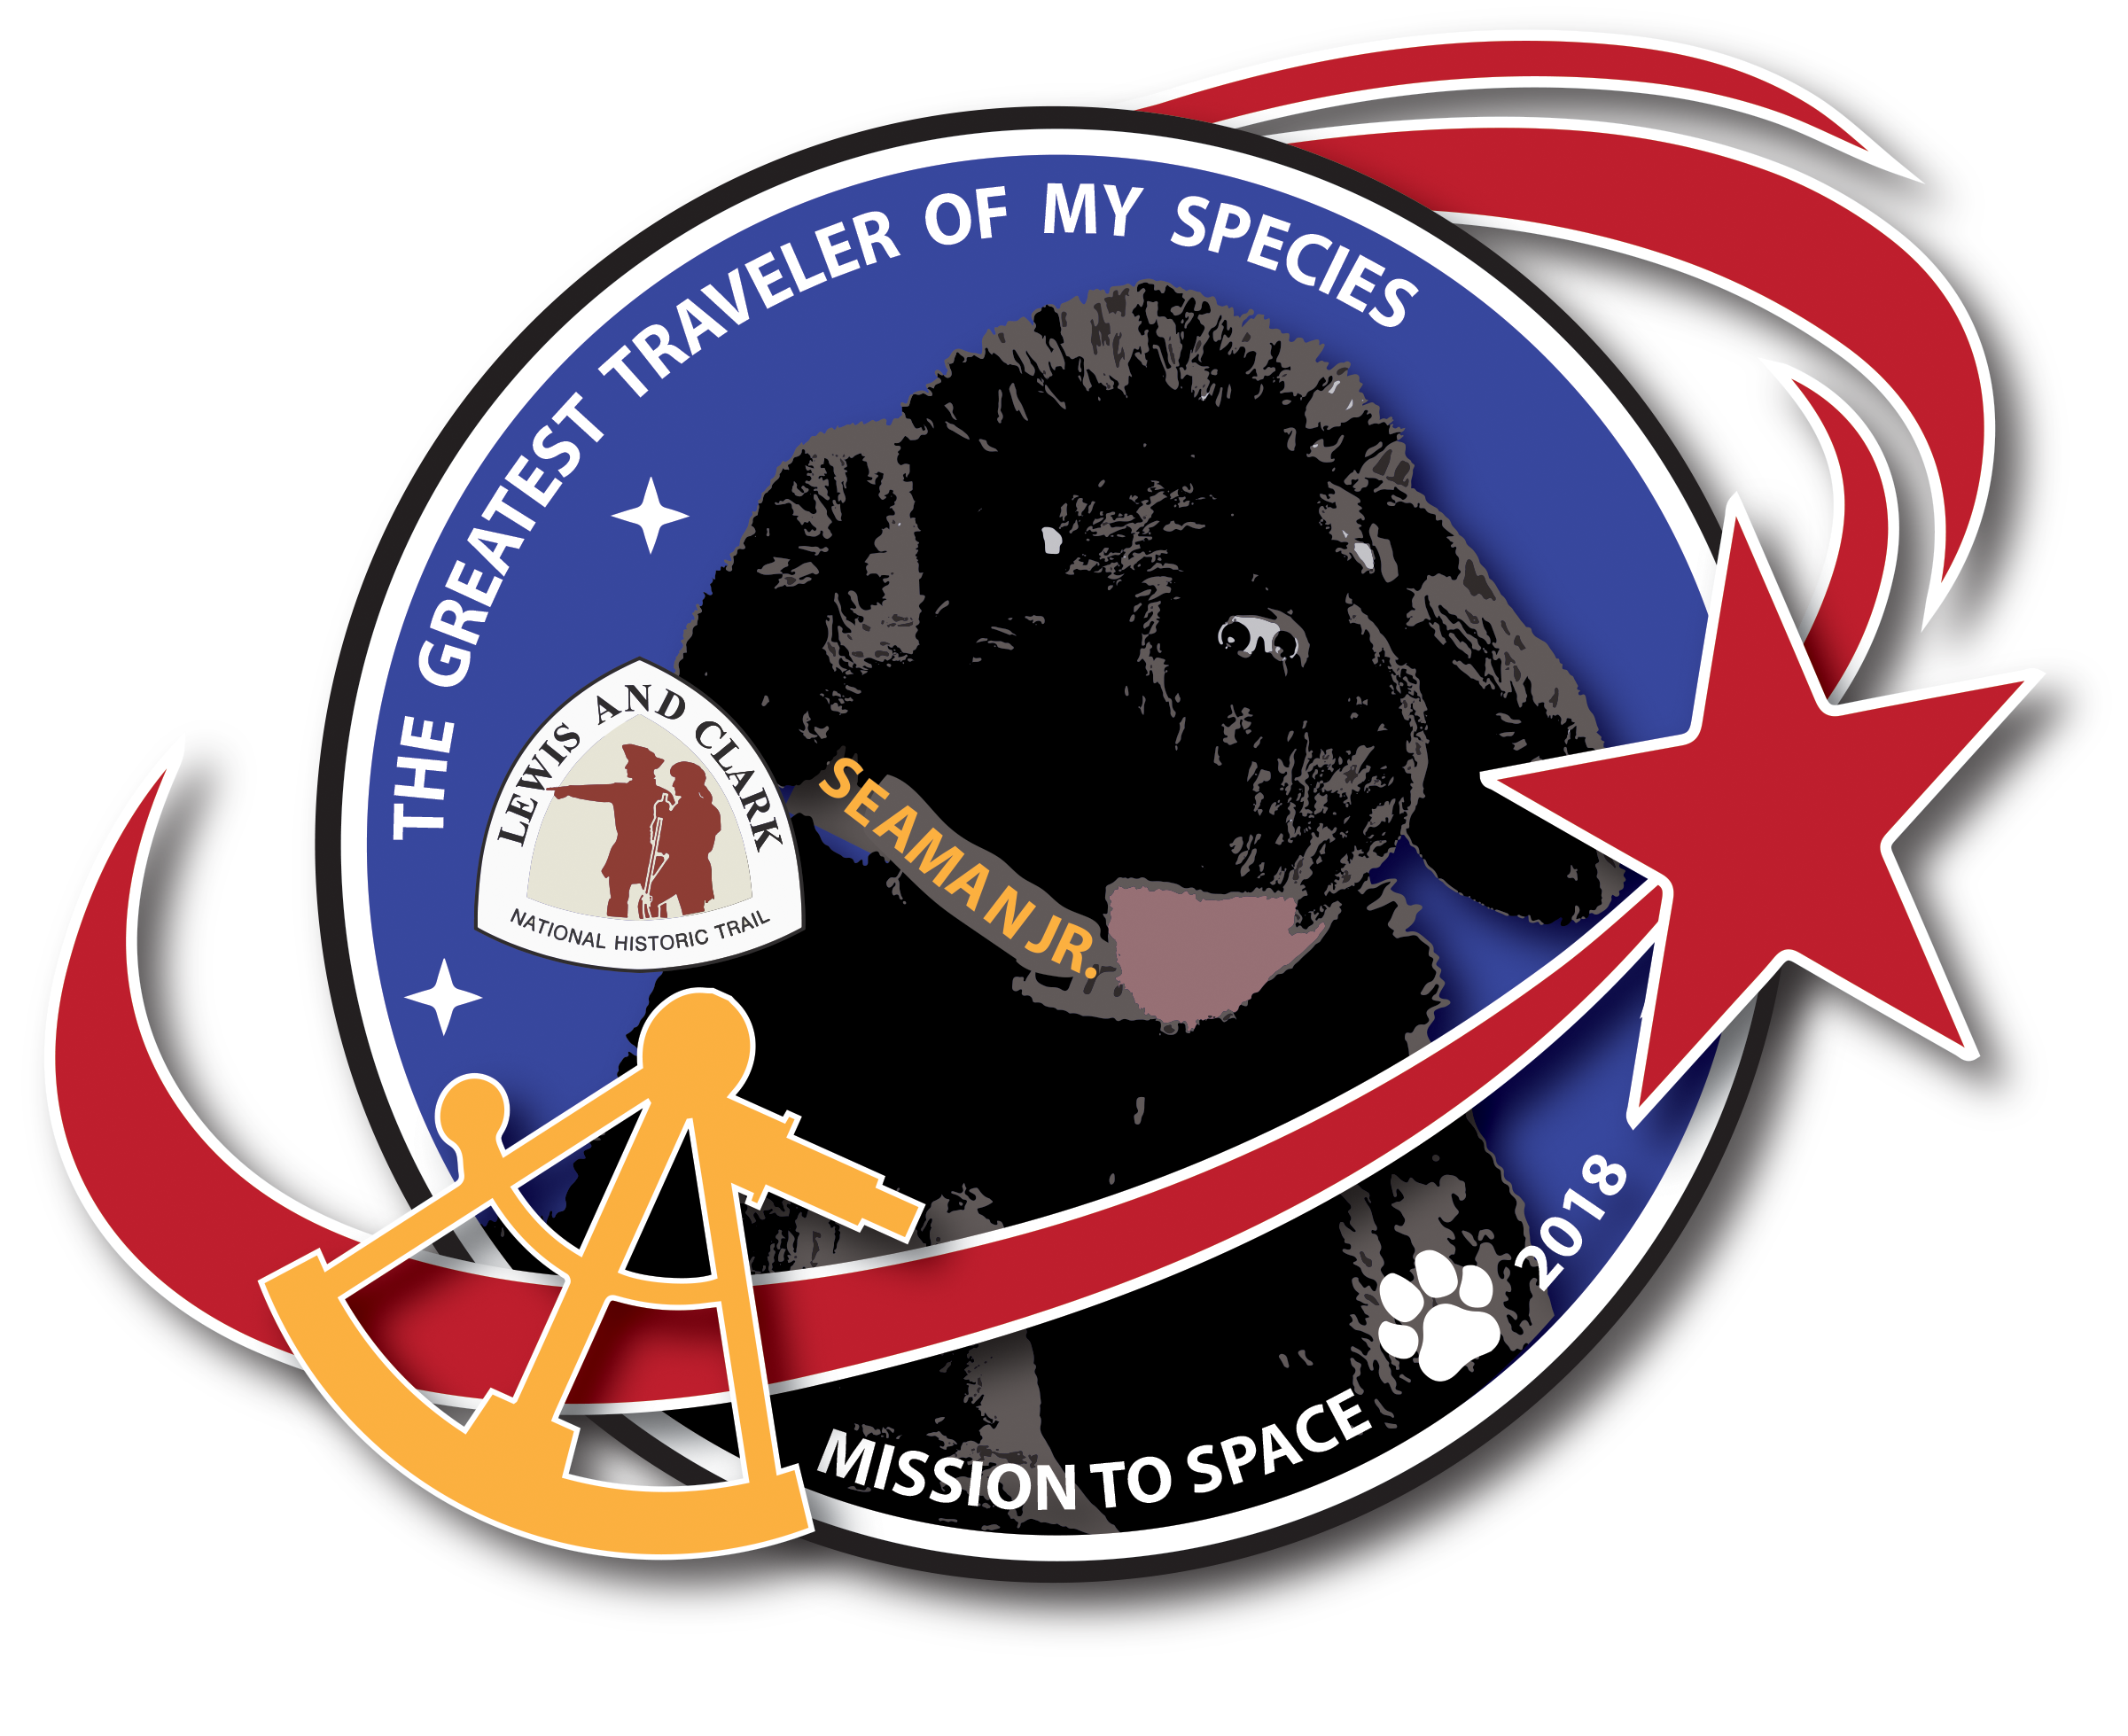 Patch for Seaman Jr space mission